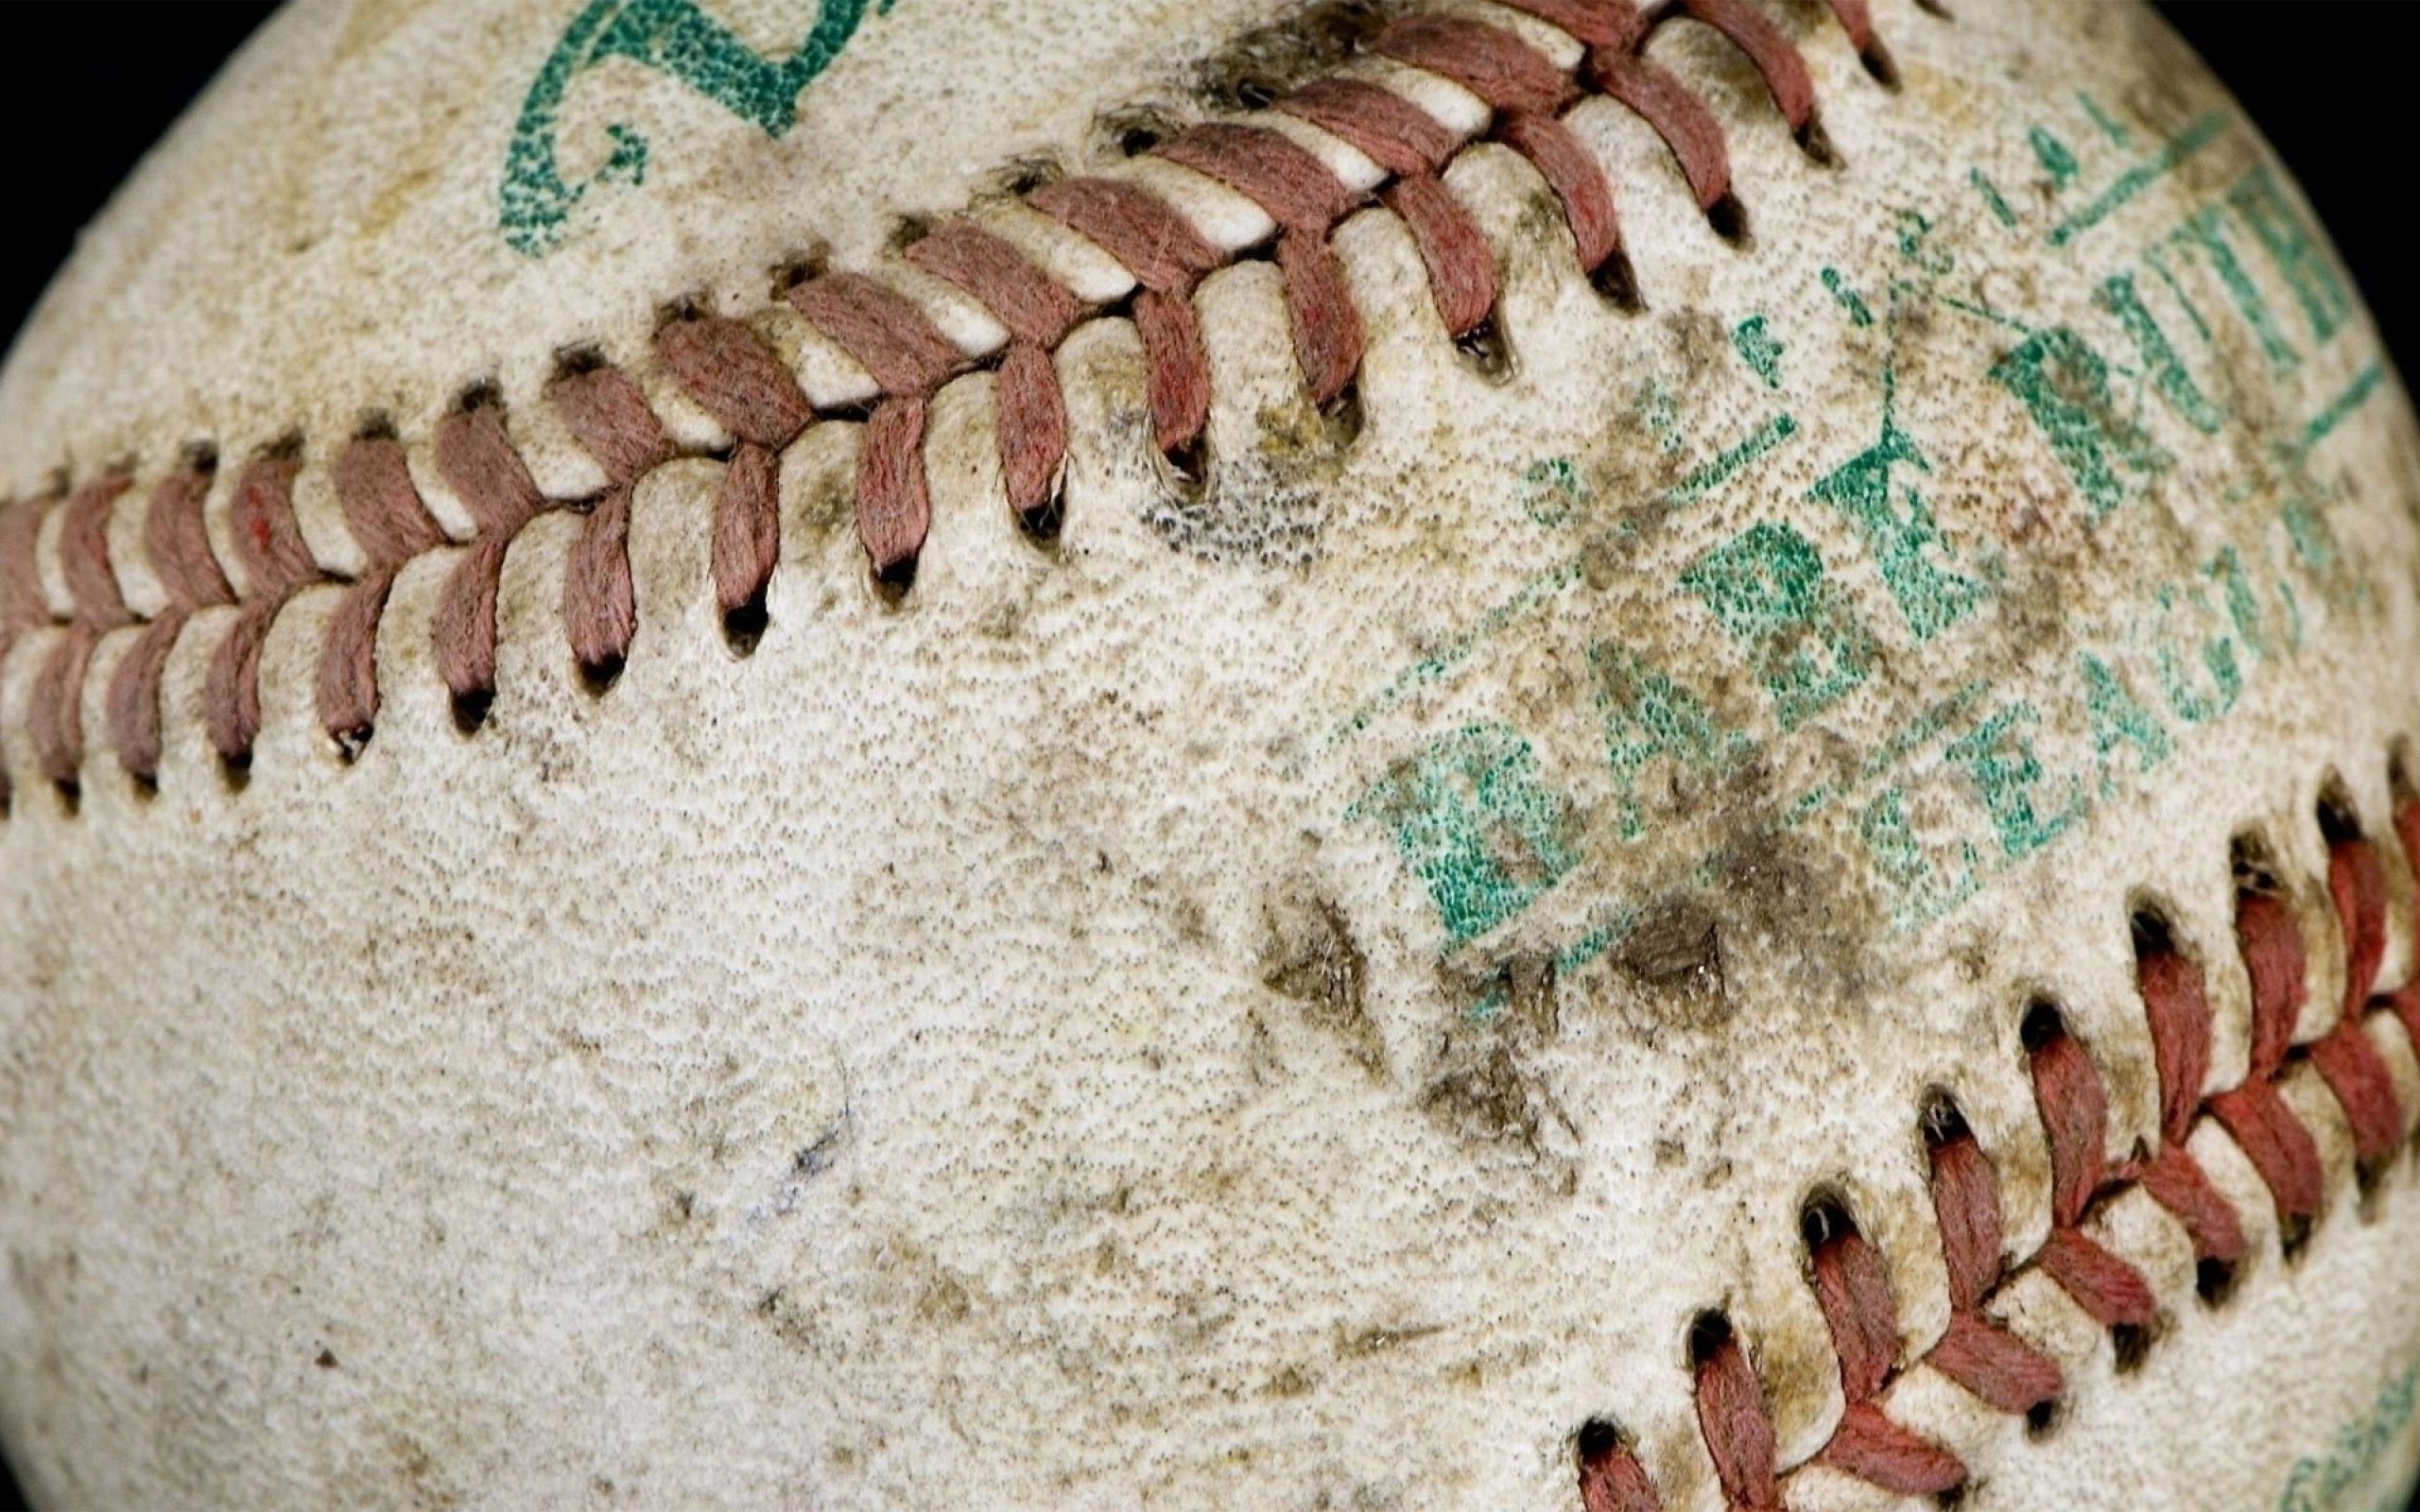 Baseball Hd Wallpaper Background Image 2560x1600 Id 649772 Images, Photos, Reviews